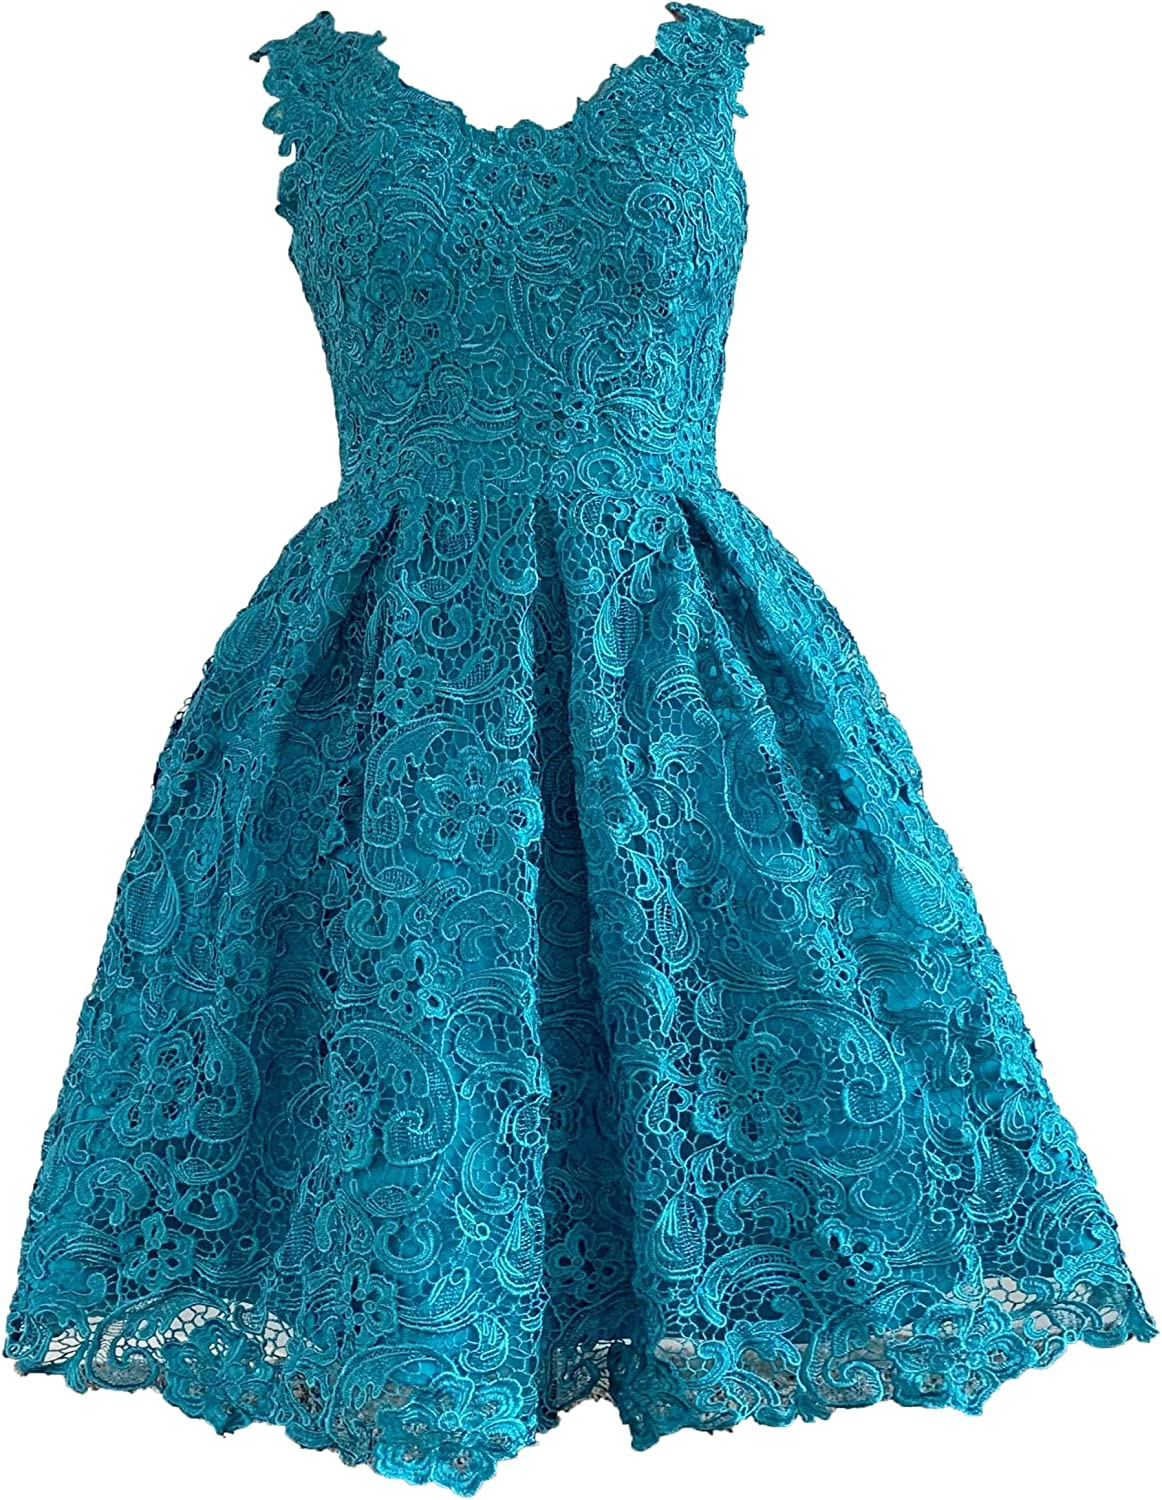 Alexzendra Short Lace Prom Dresses 2019 V Neck bluee Party Homcoming Dresses